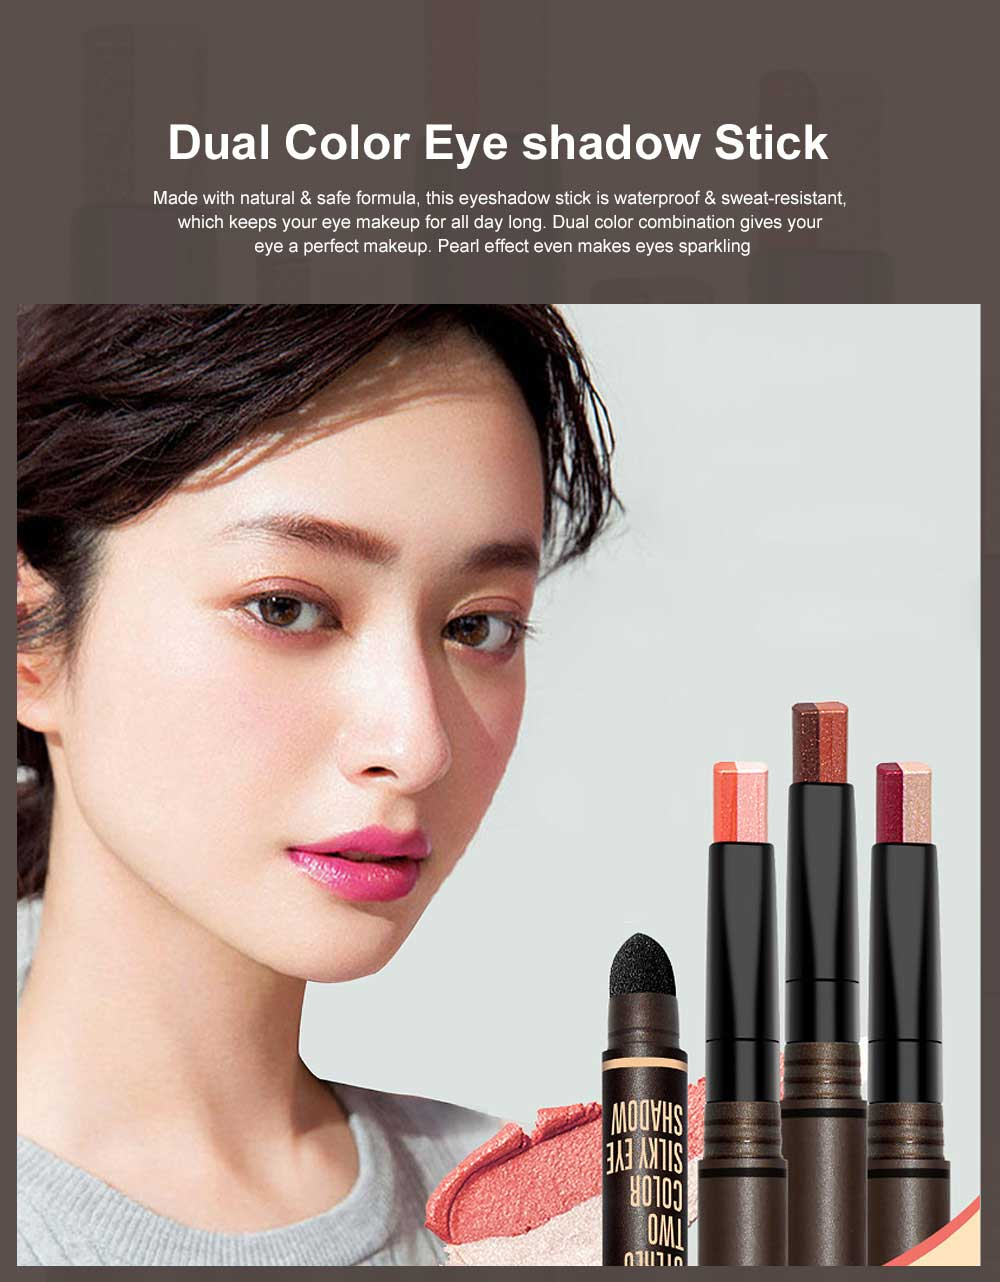 Portable Dual Color Eye shadow Stick Waterproof Long-Lasting Eye Makeup Stick Pearl Effect Cosmetic for Beginner 0